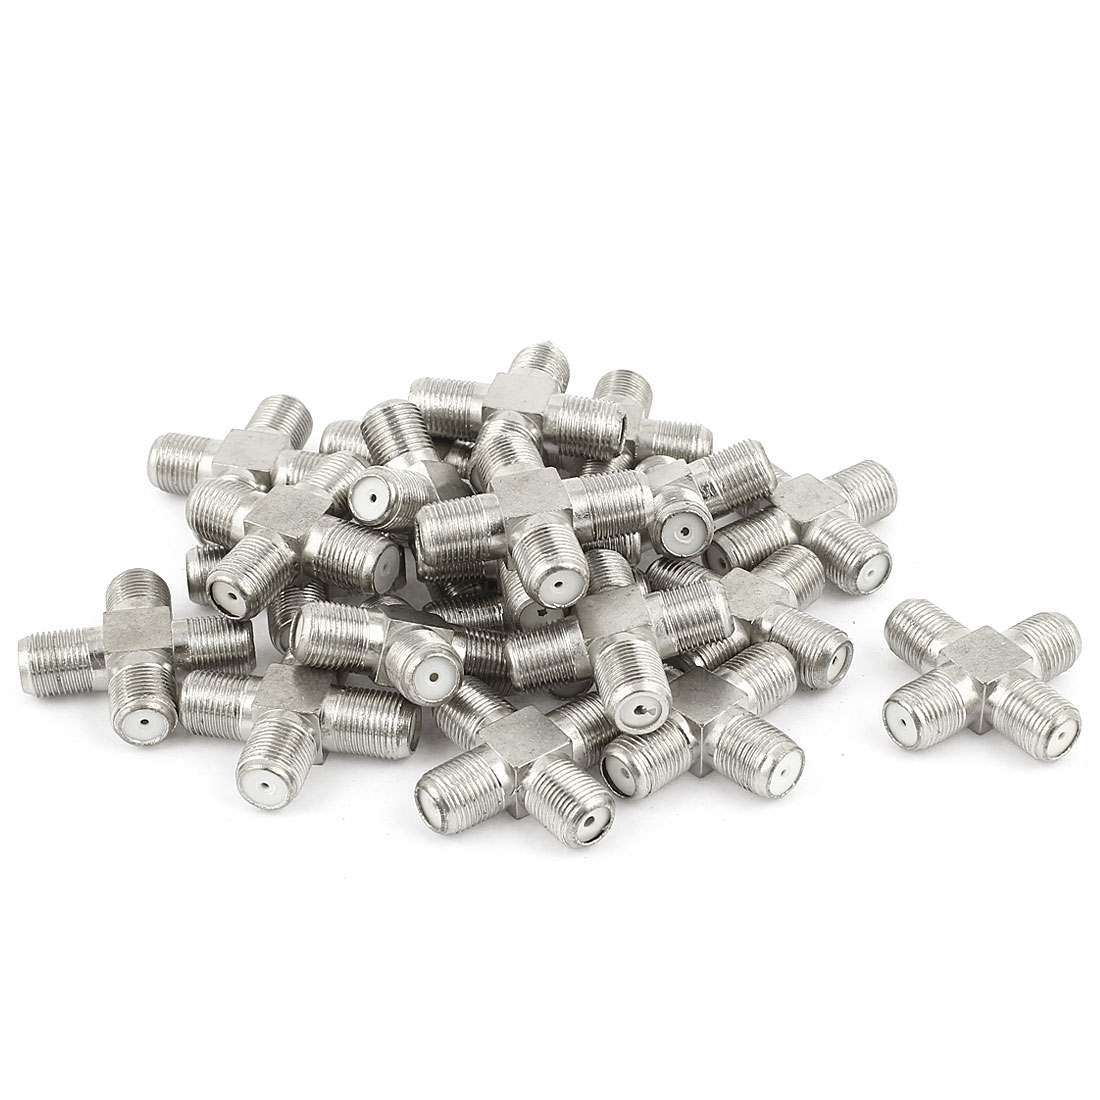 20 Pcs 1x F Female to 3x F Type Female Splliter 4 Way Connector Adapter